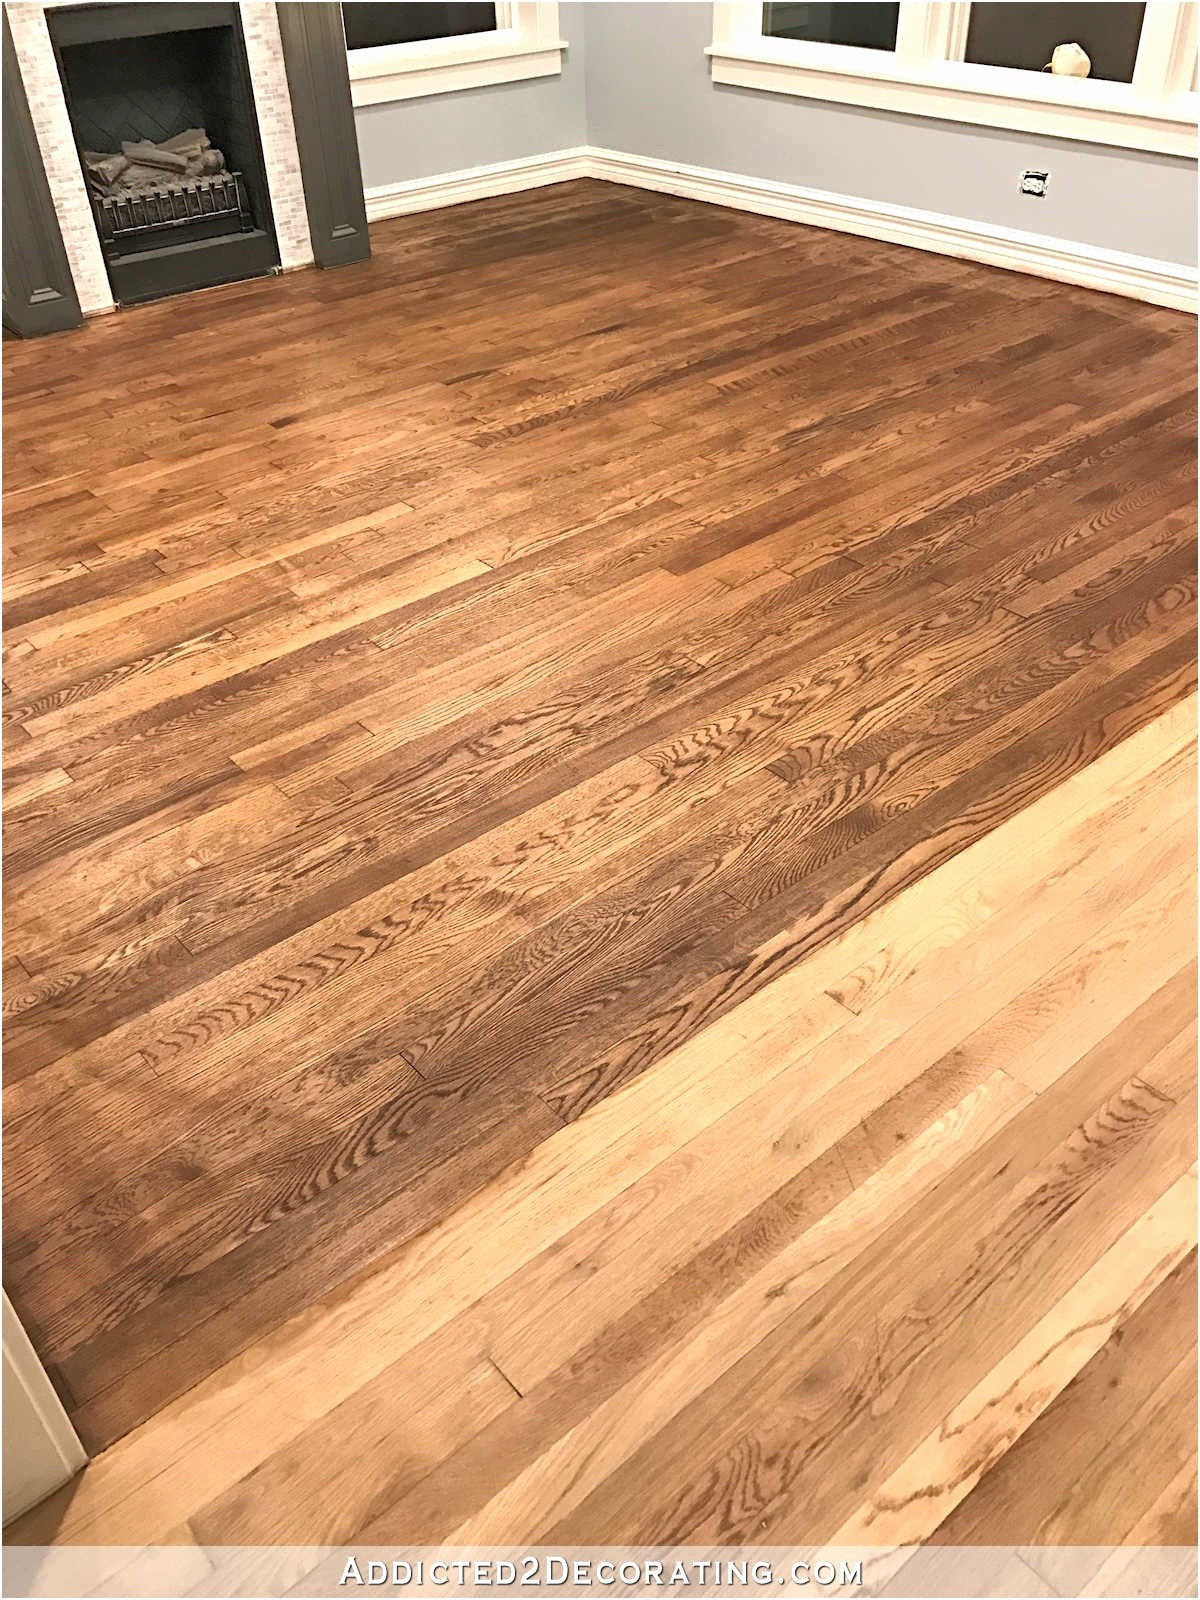 minwax hardwood floor care system of 13 best of cost of hardwood floors gallery dizpos com with regard to cost of hardwood floors awesome picture 48 of 50 armstrong hardwood flooring fresh hardwood image of